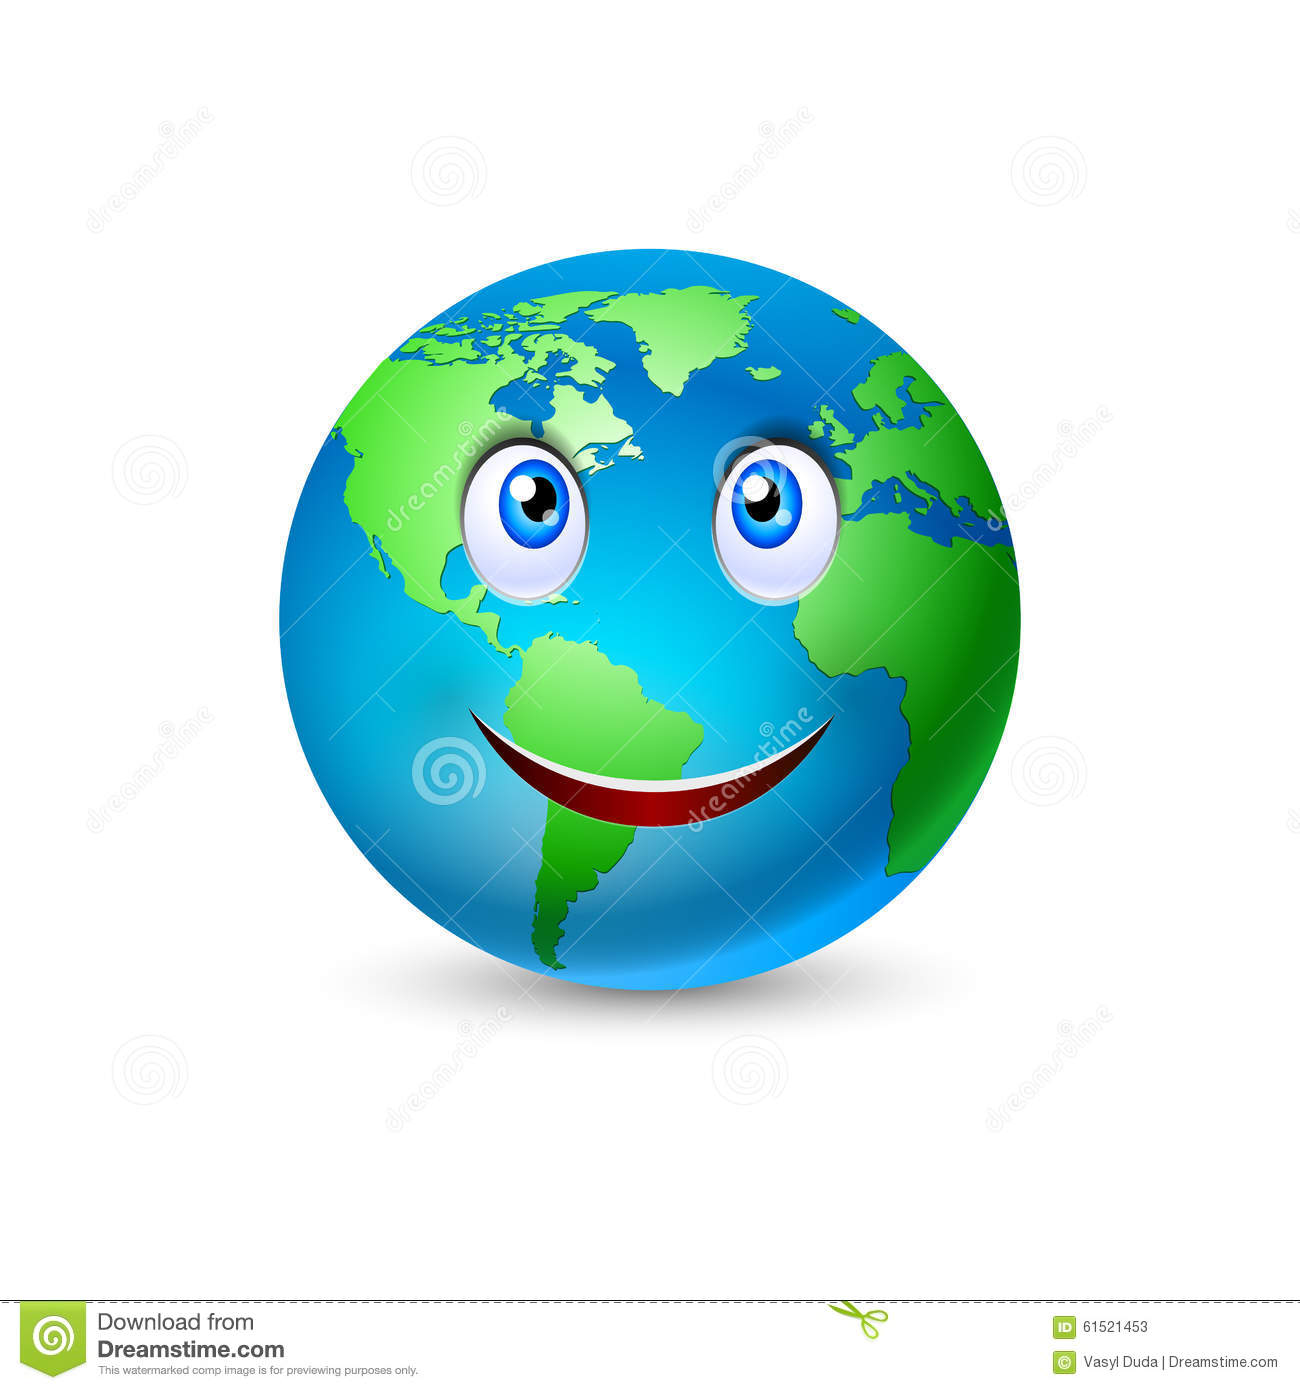 961 Planet Earth free clipart.